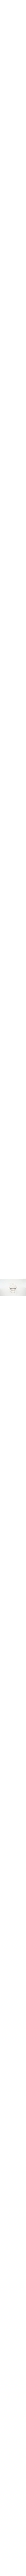 Silver Honey dish Modern line for Tableware gift Stunning silver judaica